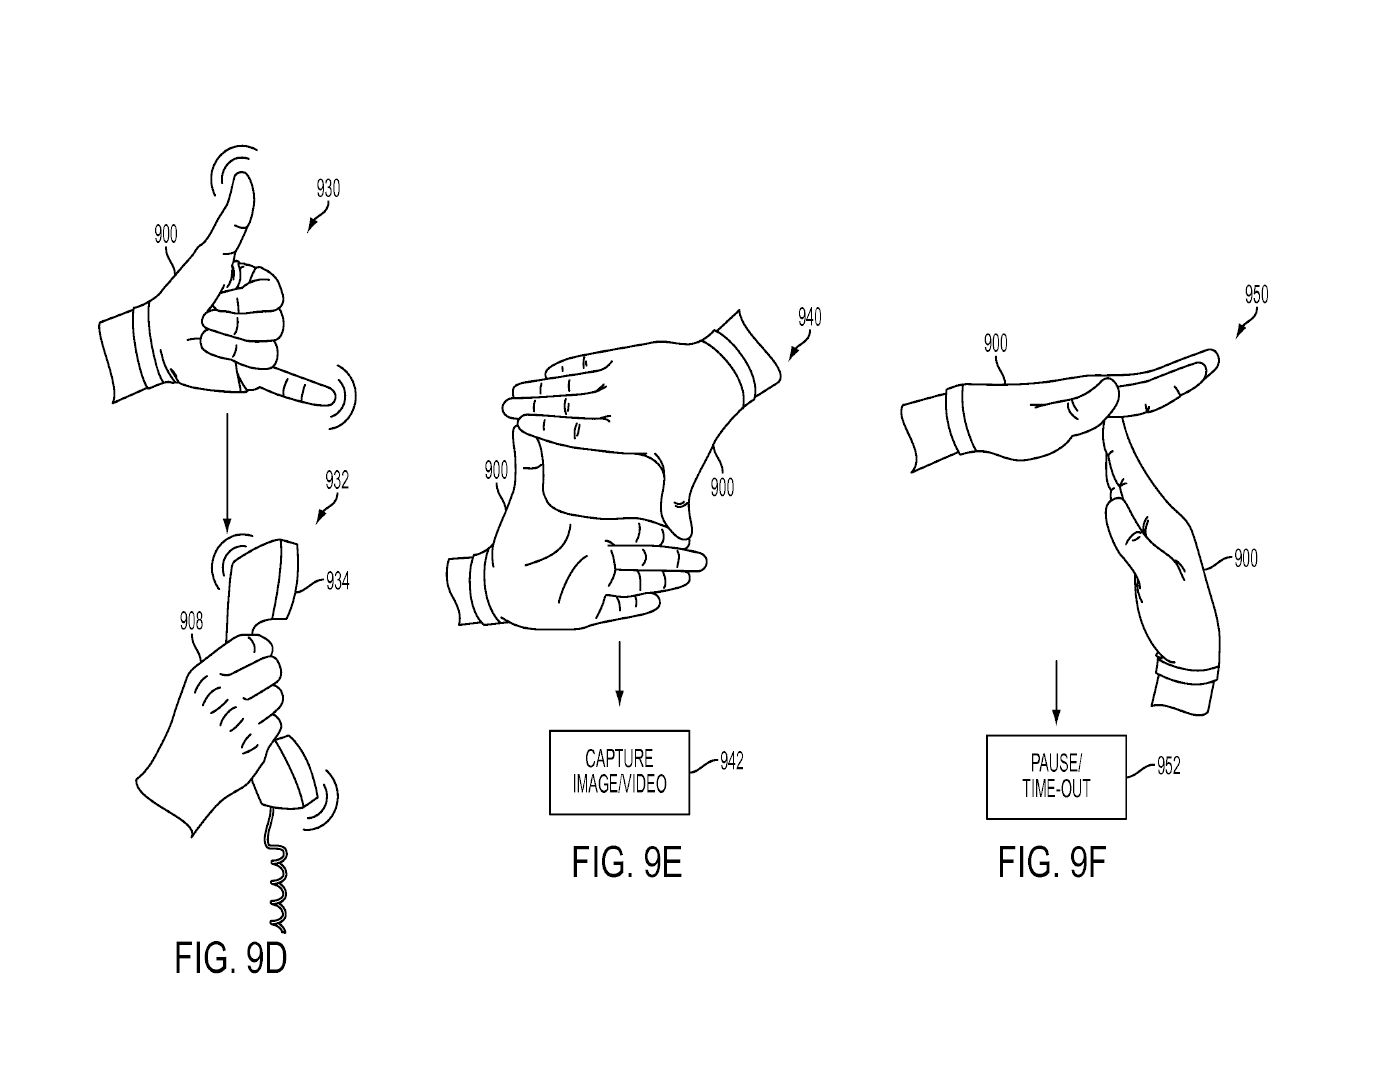 Glove Controller Applications Filed By Sony For Use With